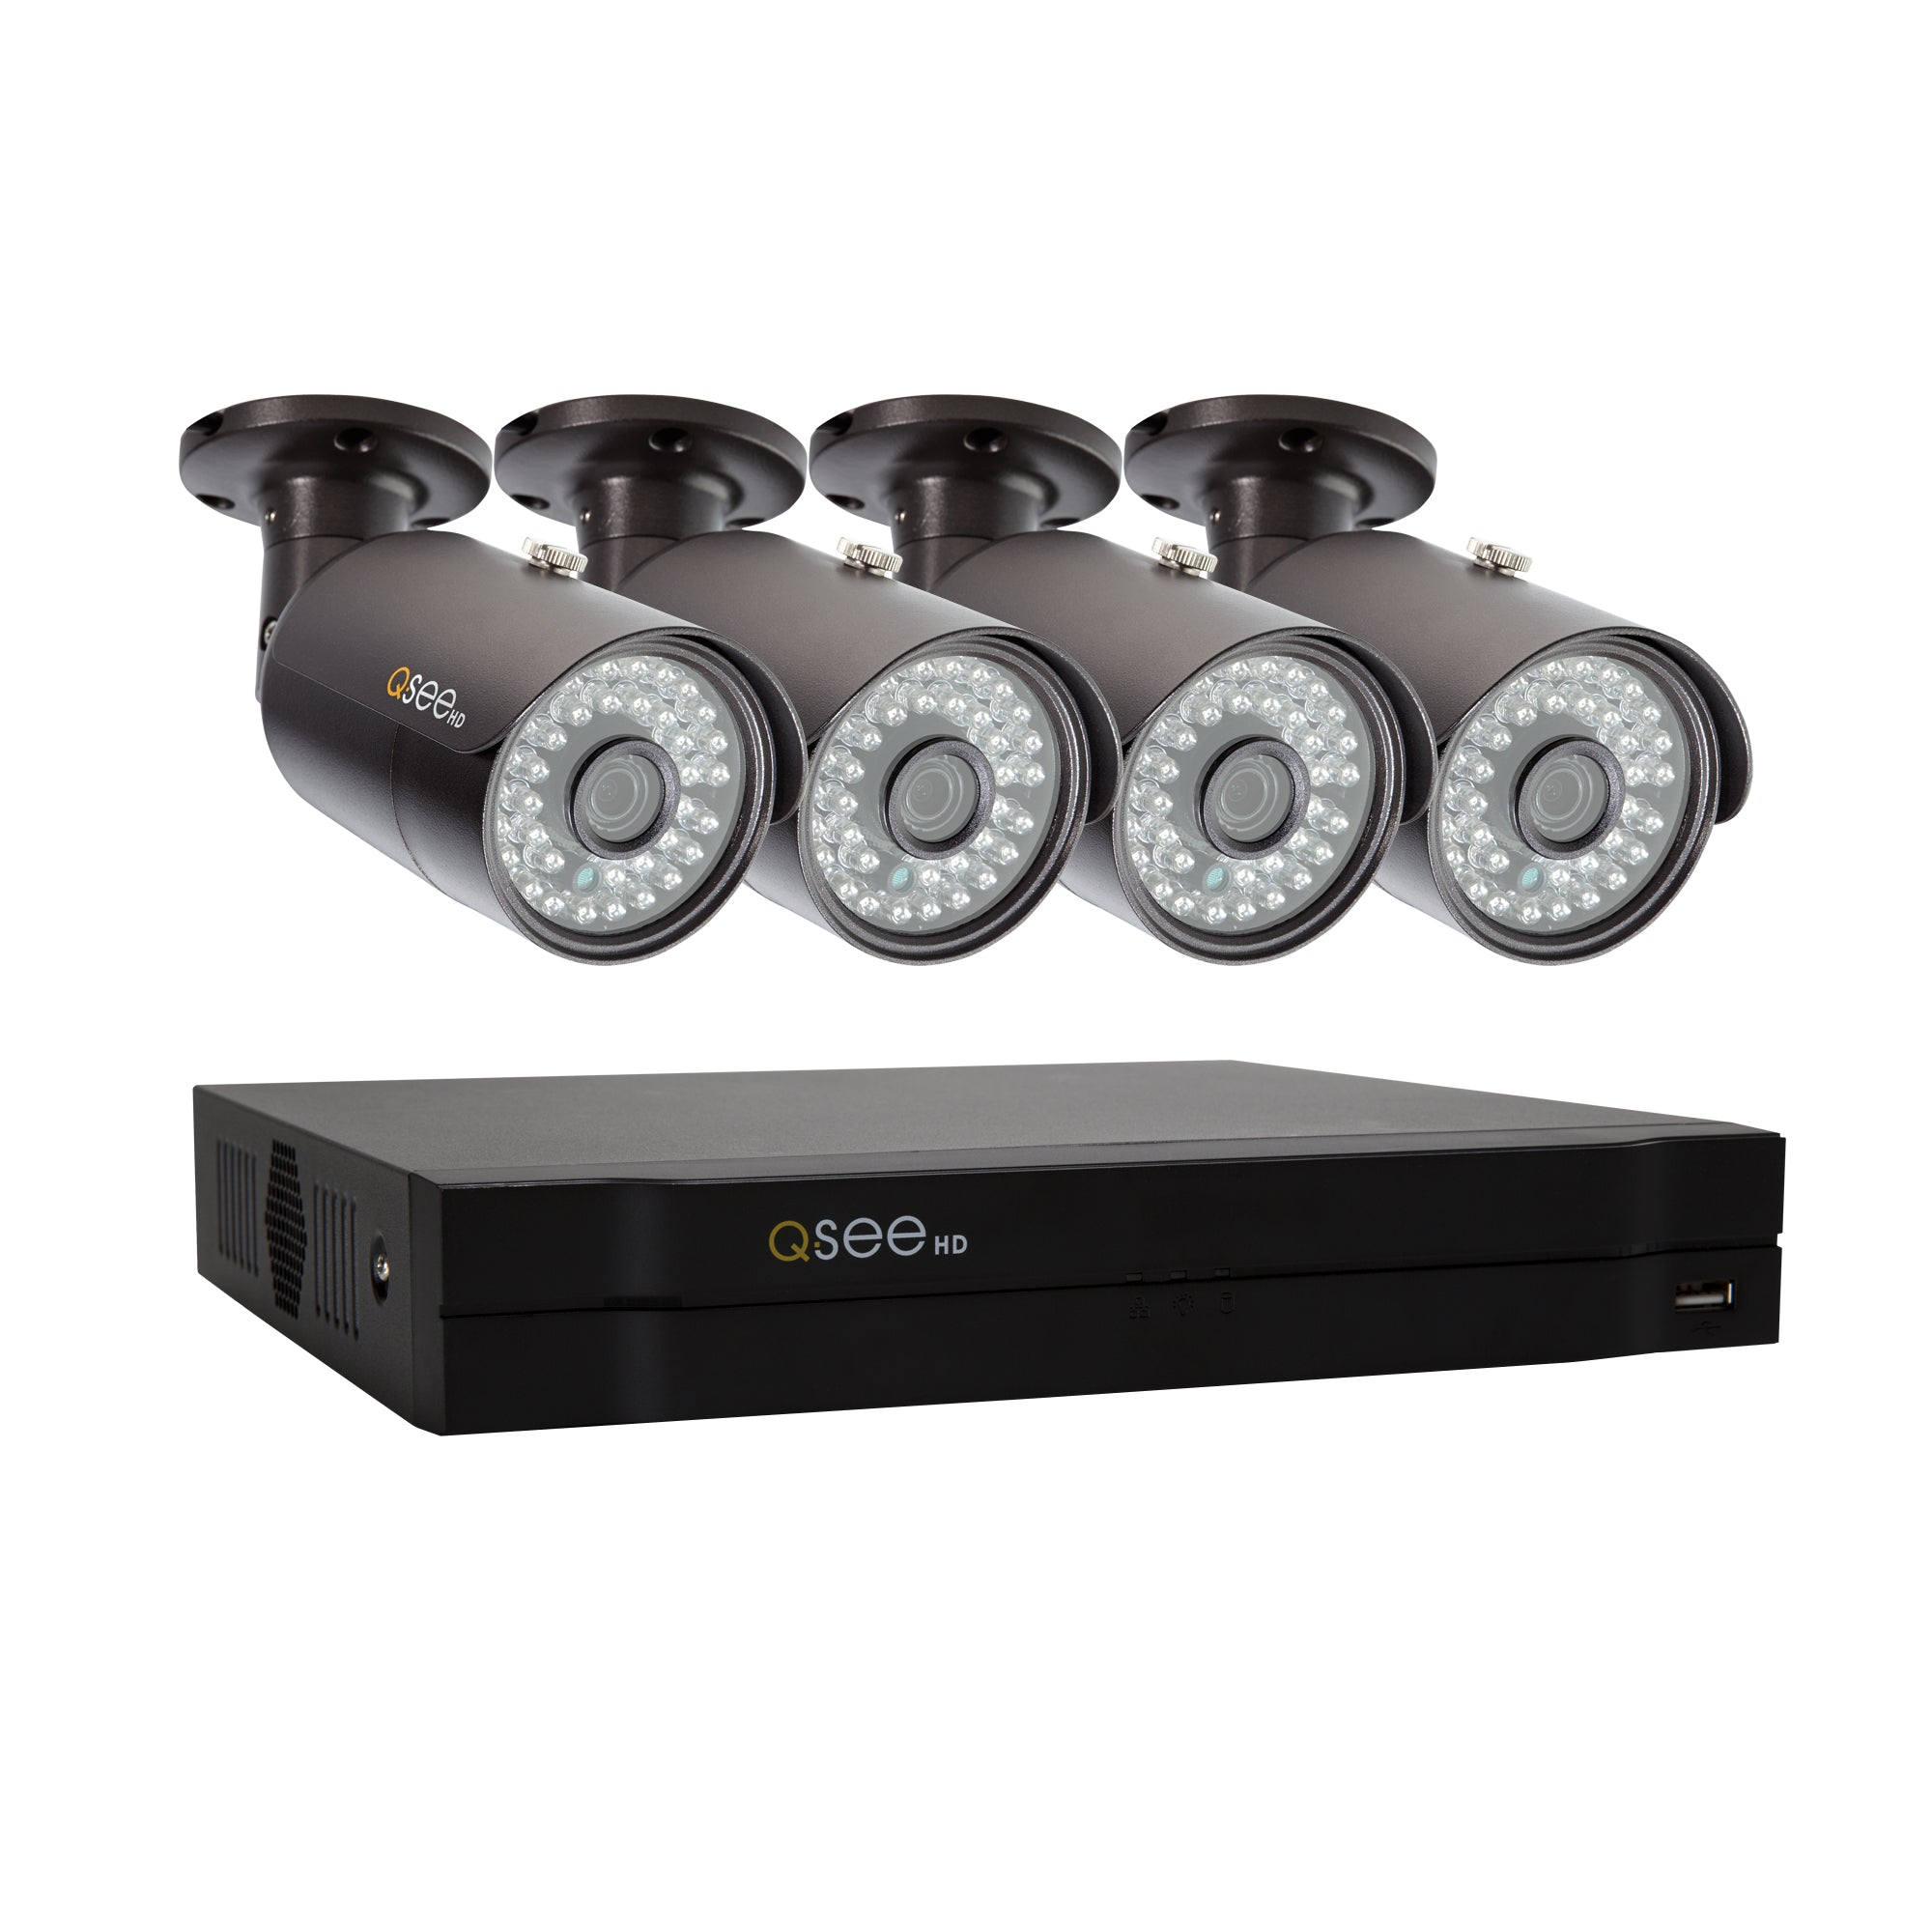 4 CHANNEL ANALOG HD 4MP DVR WITH (4) 4MP BULLET CAMERAS AND 1TB HDD (QC974-4DY-1) Analog HD DVRs  - Q-See